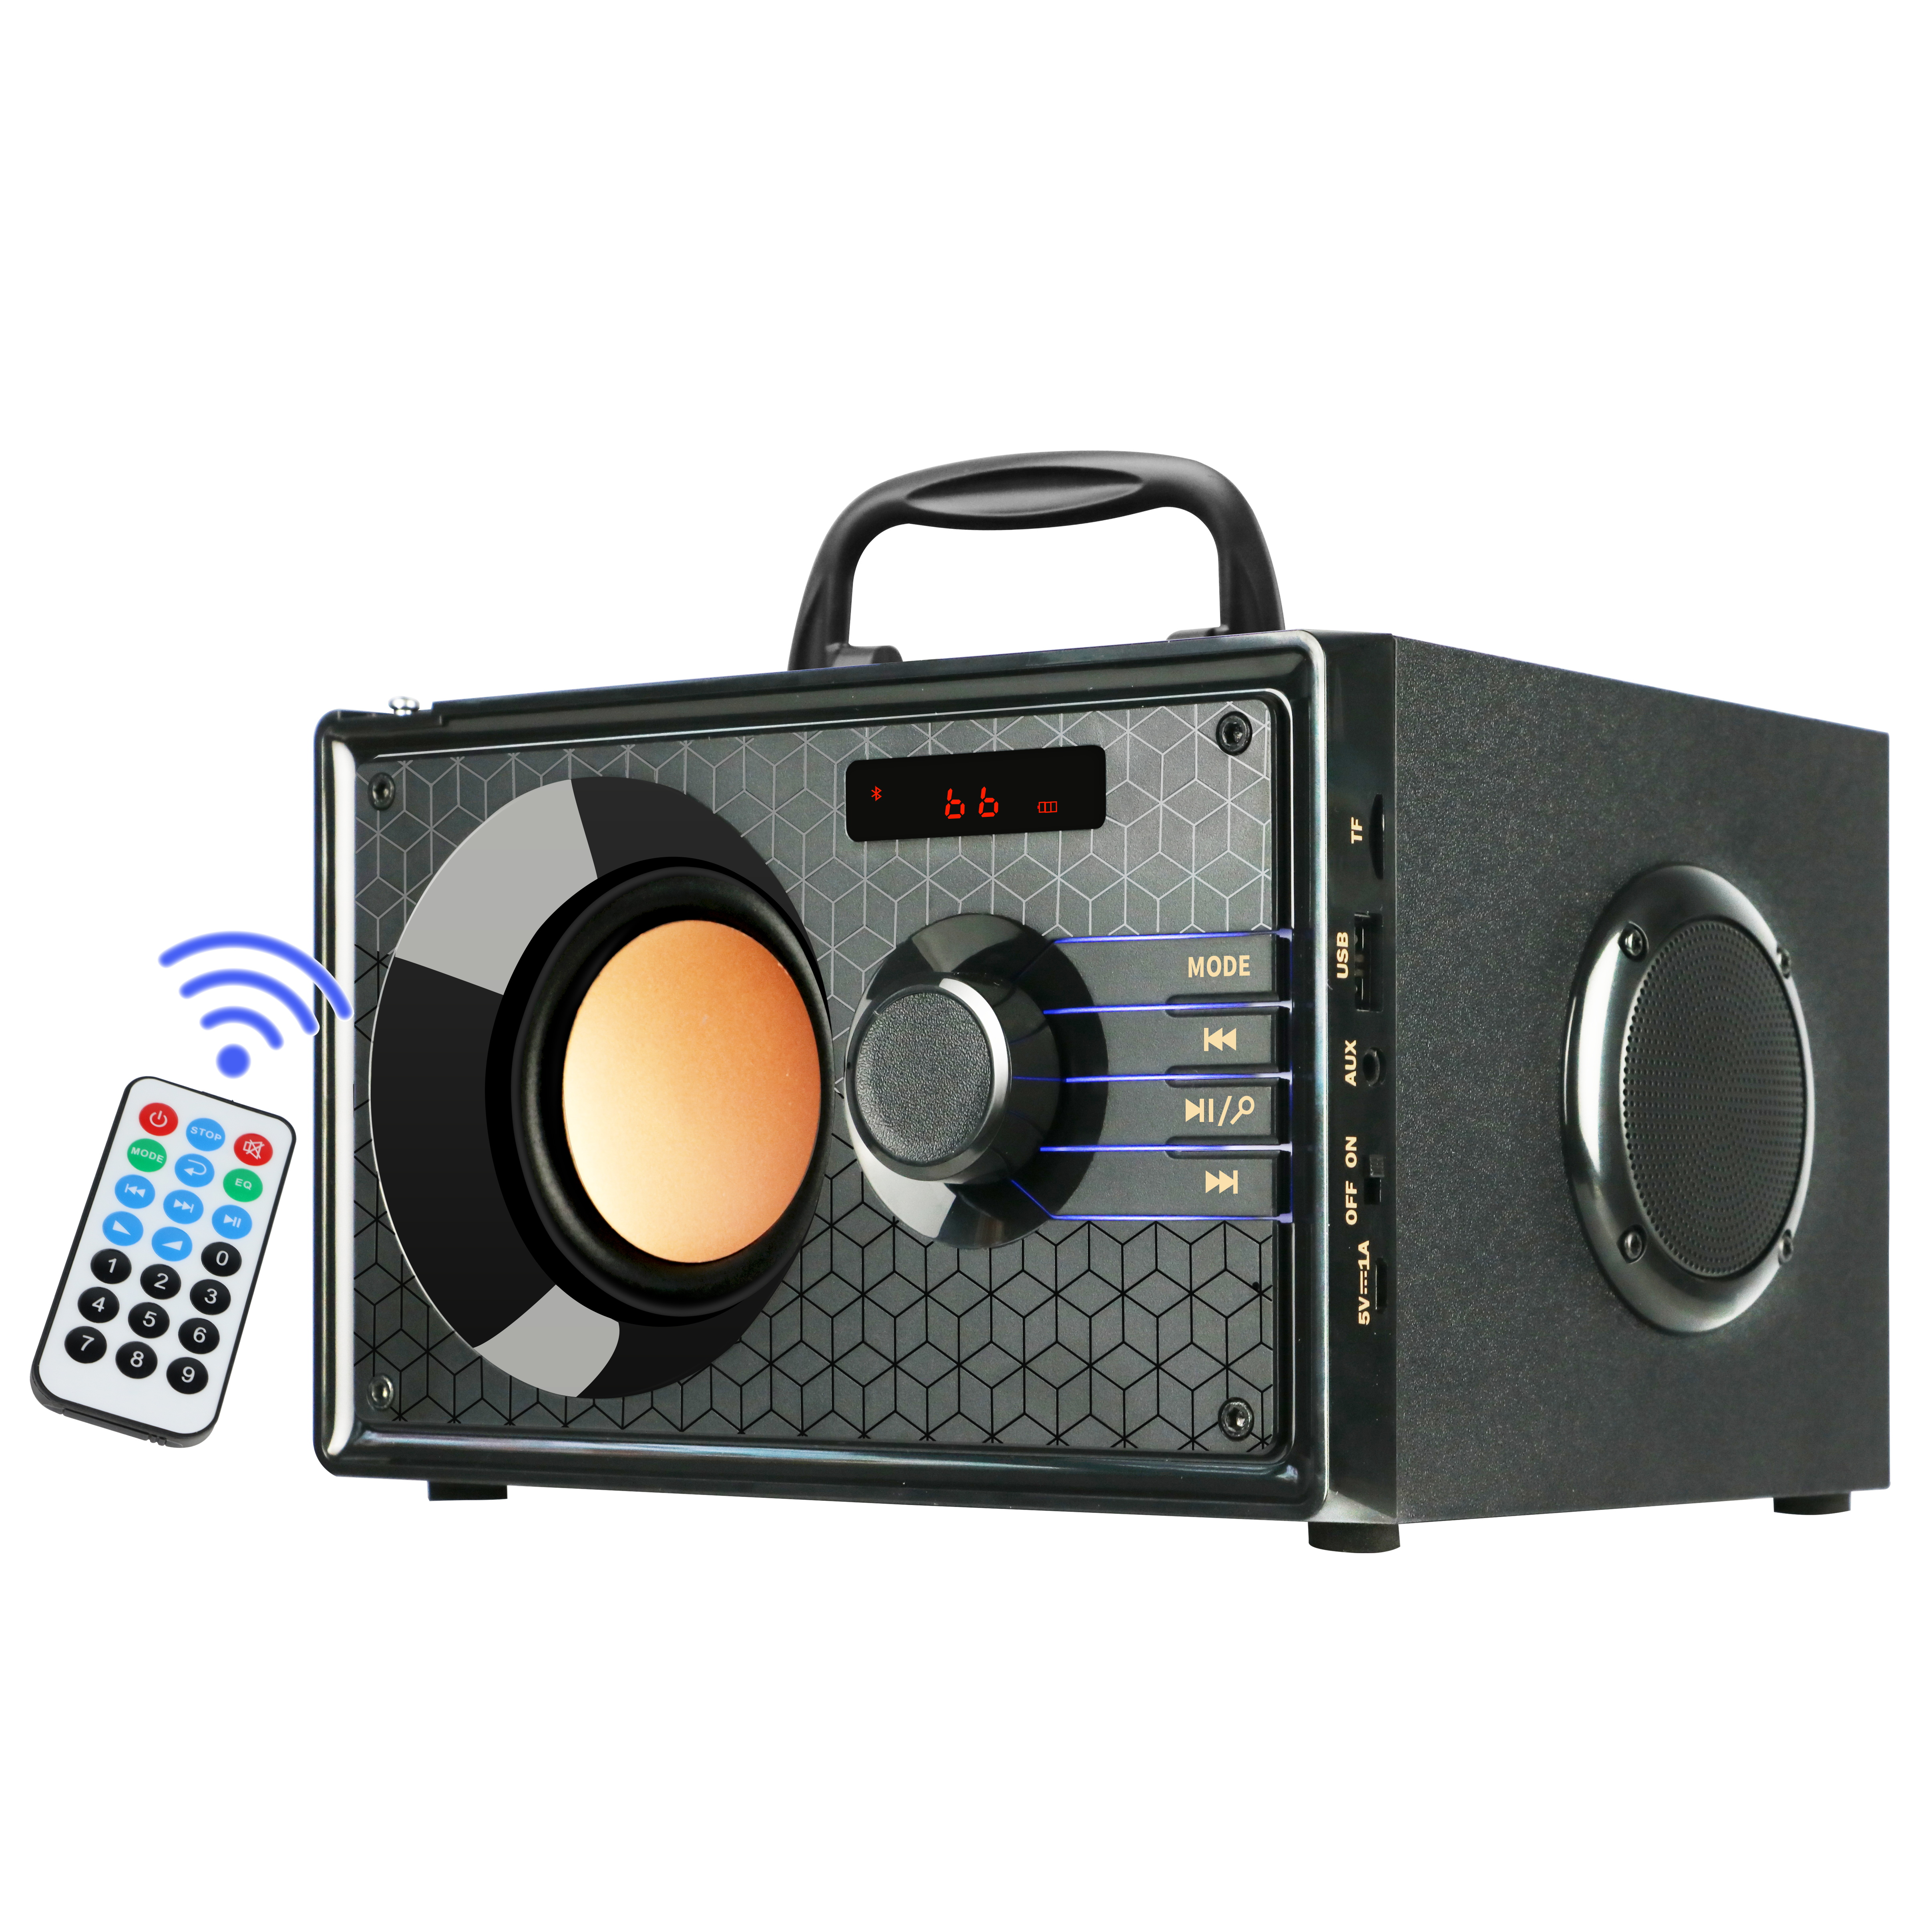 TOPROAD Portable Bluetooth Speaker Wireless Big Power Speakers Stereo Subwoofer Bass Sound Box Support FM AUX TF Remote Control Outdoor Speakers  - AliExpress